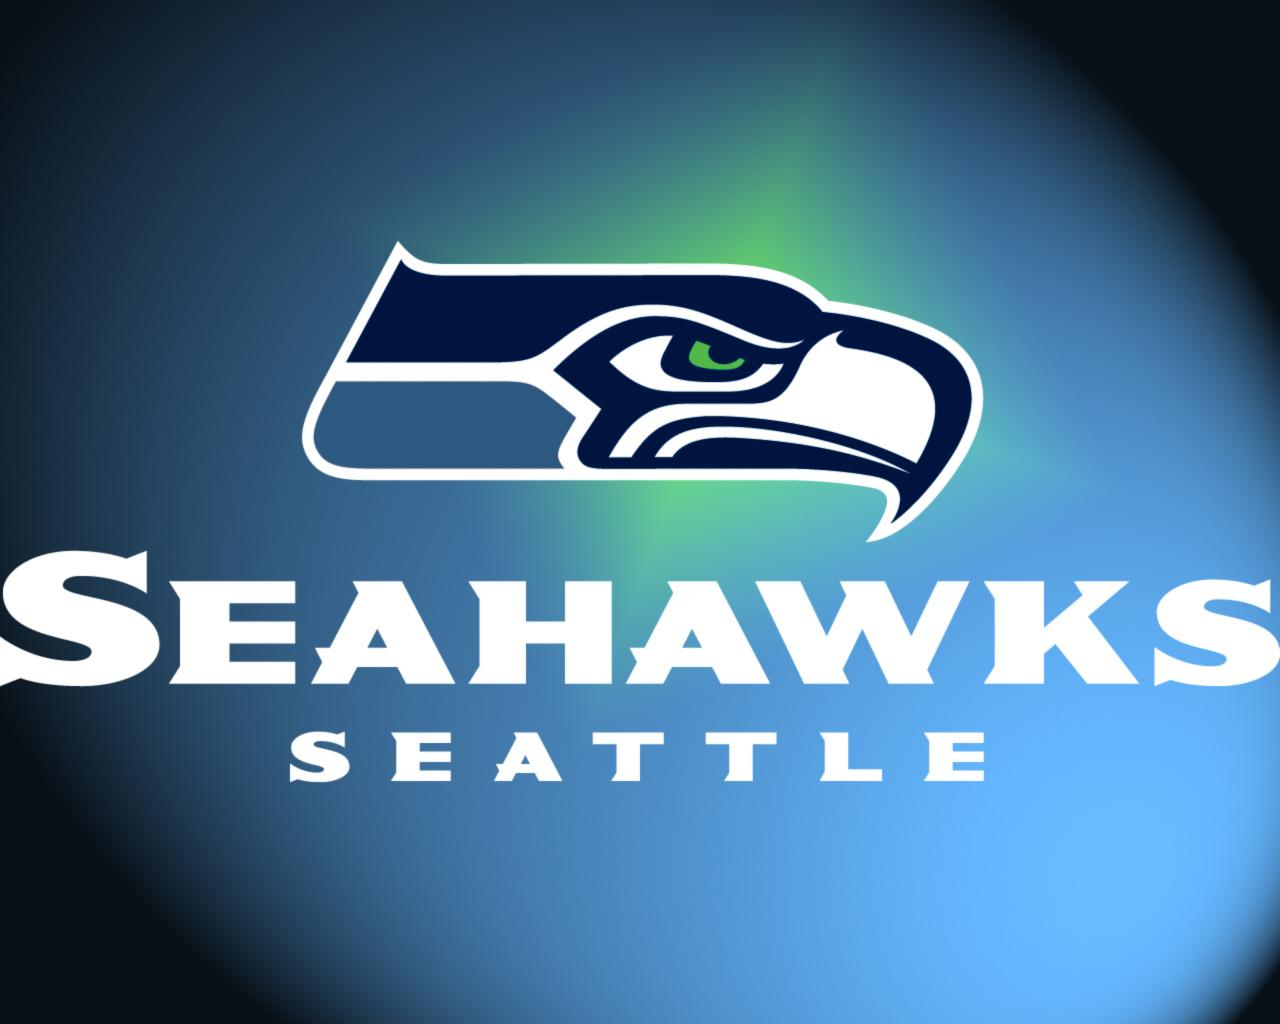 Atlanta Hawks Iphone 6 Wallpaper The 13th Beer A Salute To The Seattle Seahawks